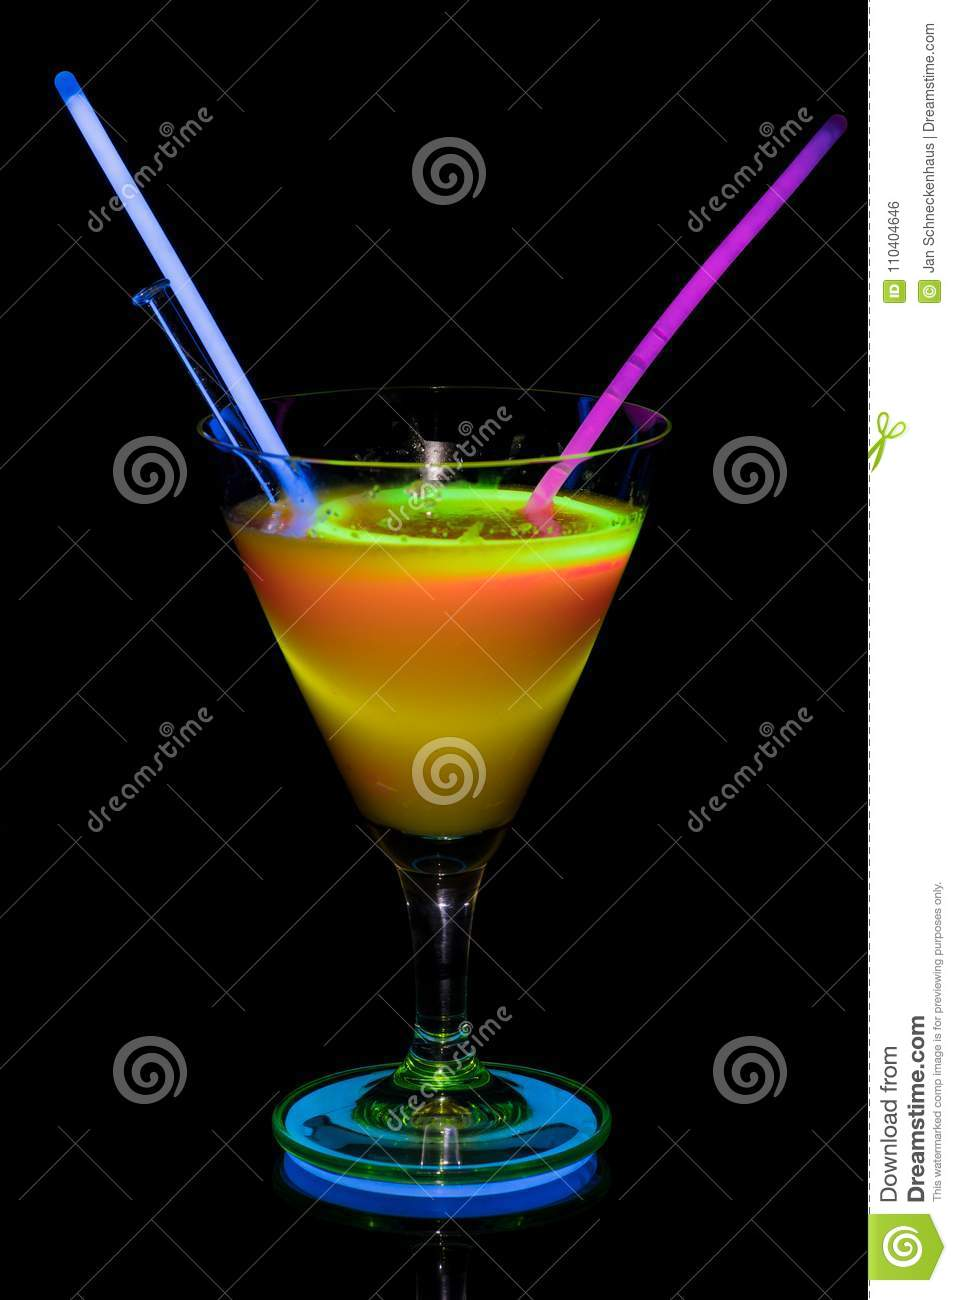 Cocktail glass with neon light.